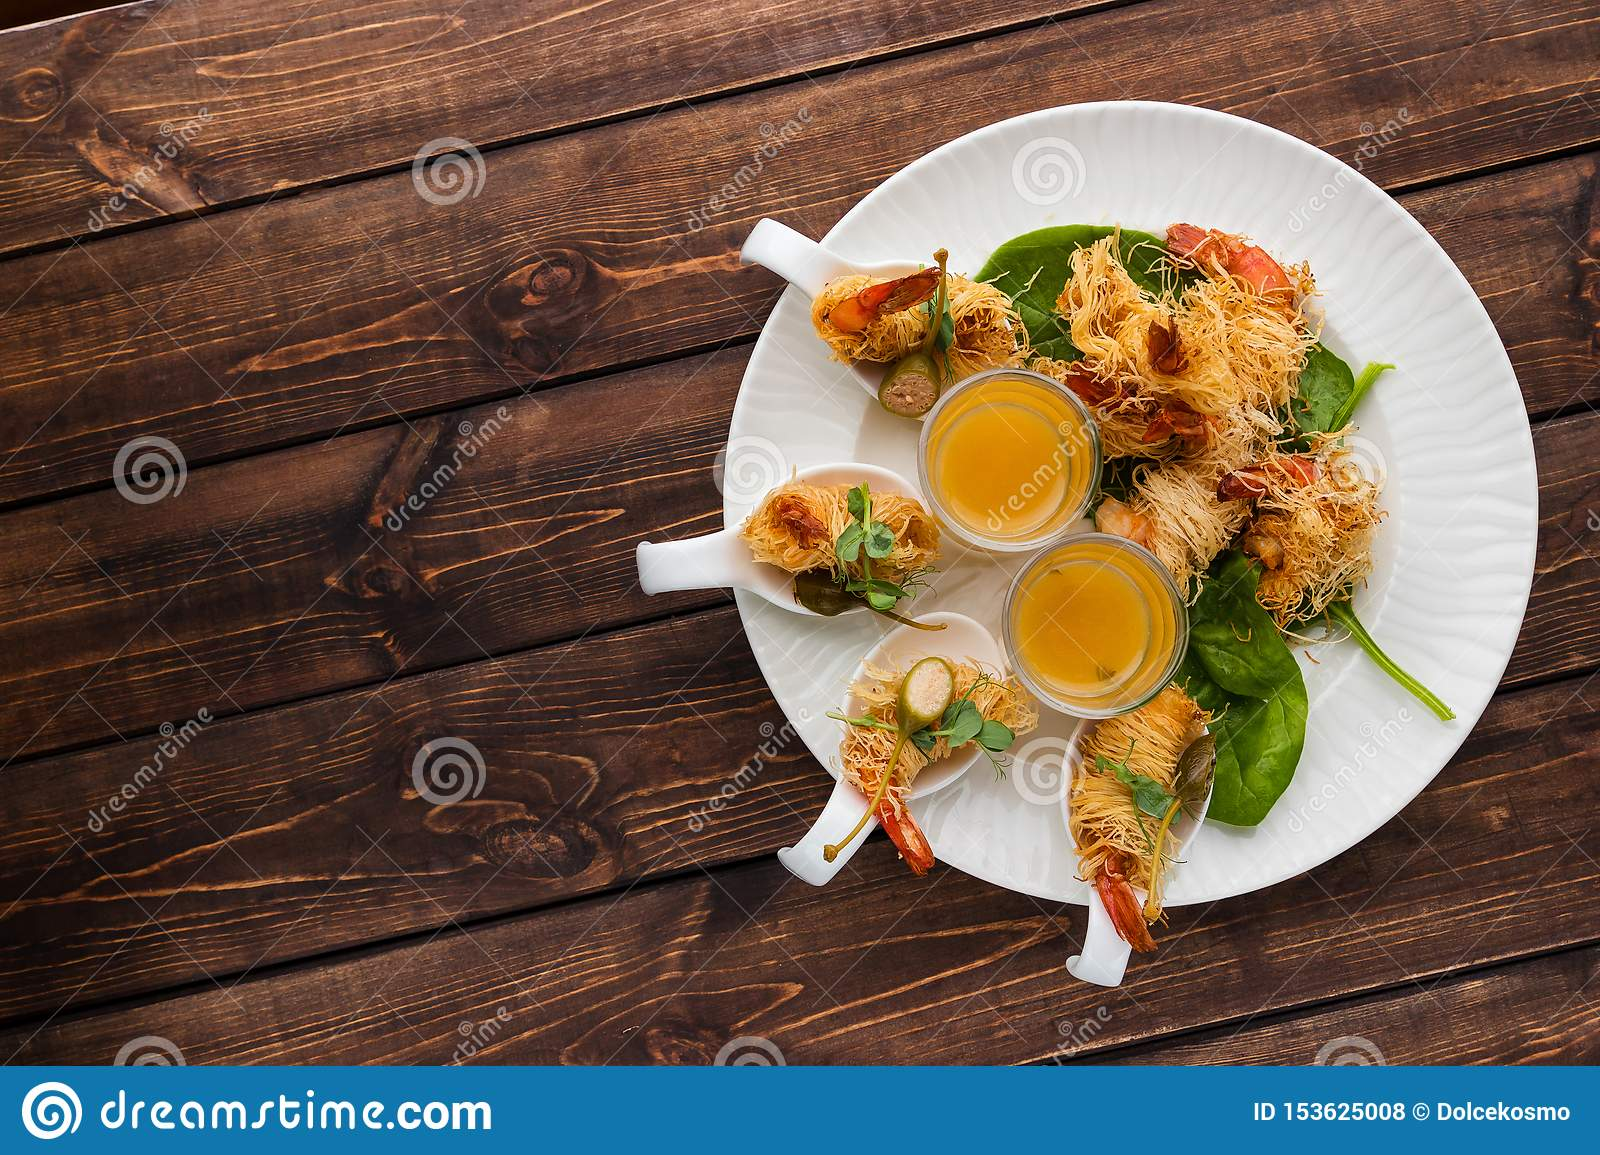 Crispy Shrimp in Kataifi Crust and Thyme with Champagne Sauce in glasses lie on a white plate on a woody background. Free space